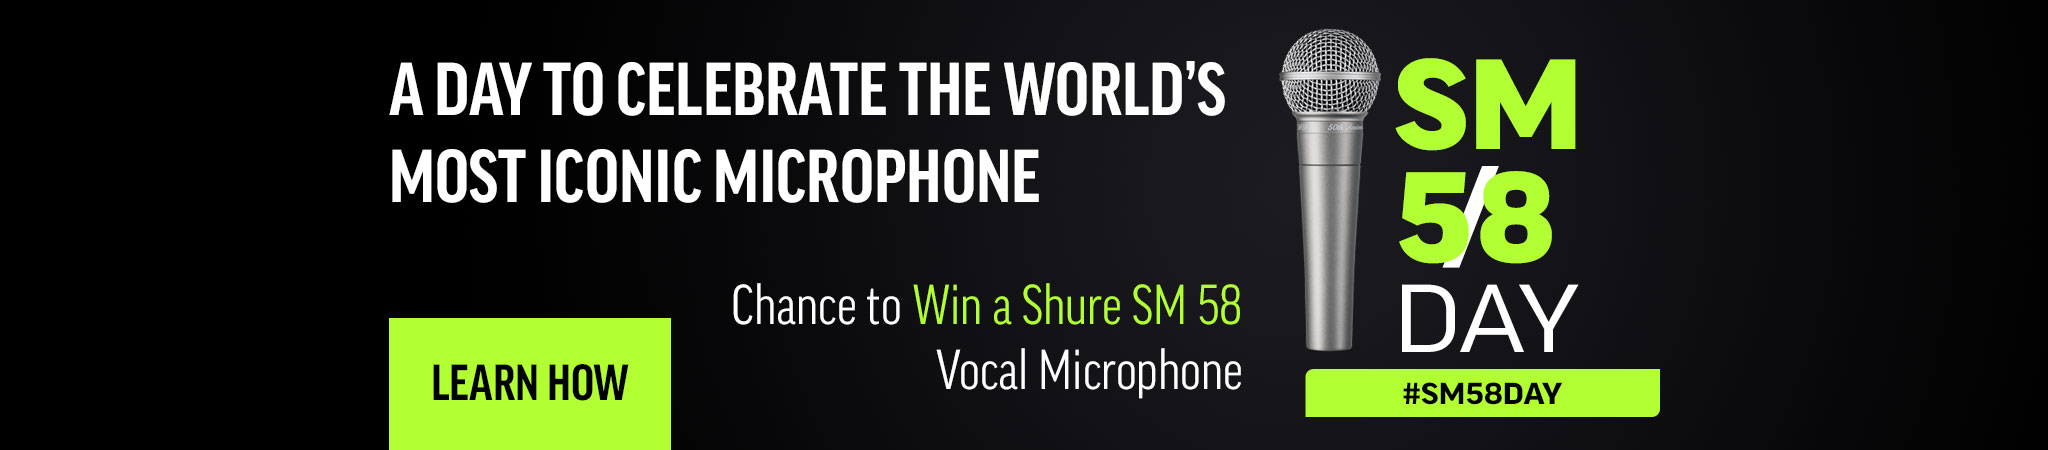 Shure SM58 Giveaway